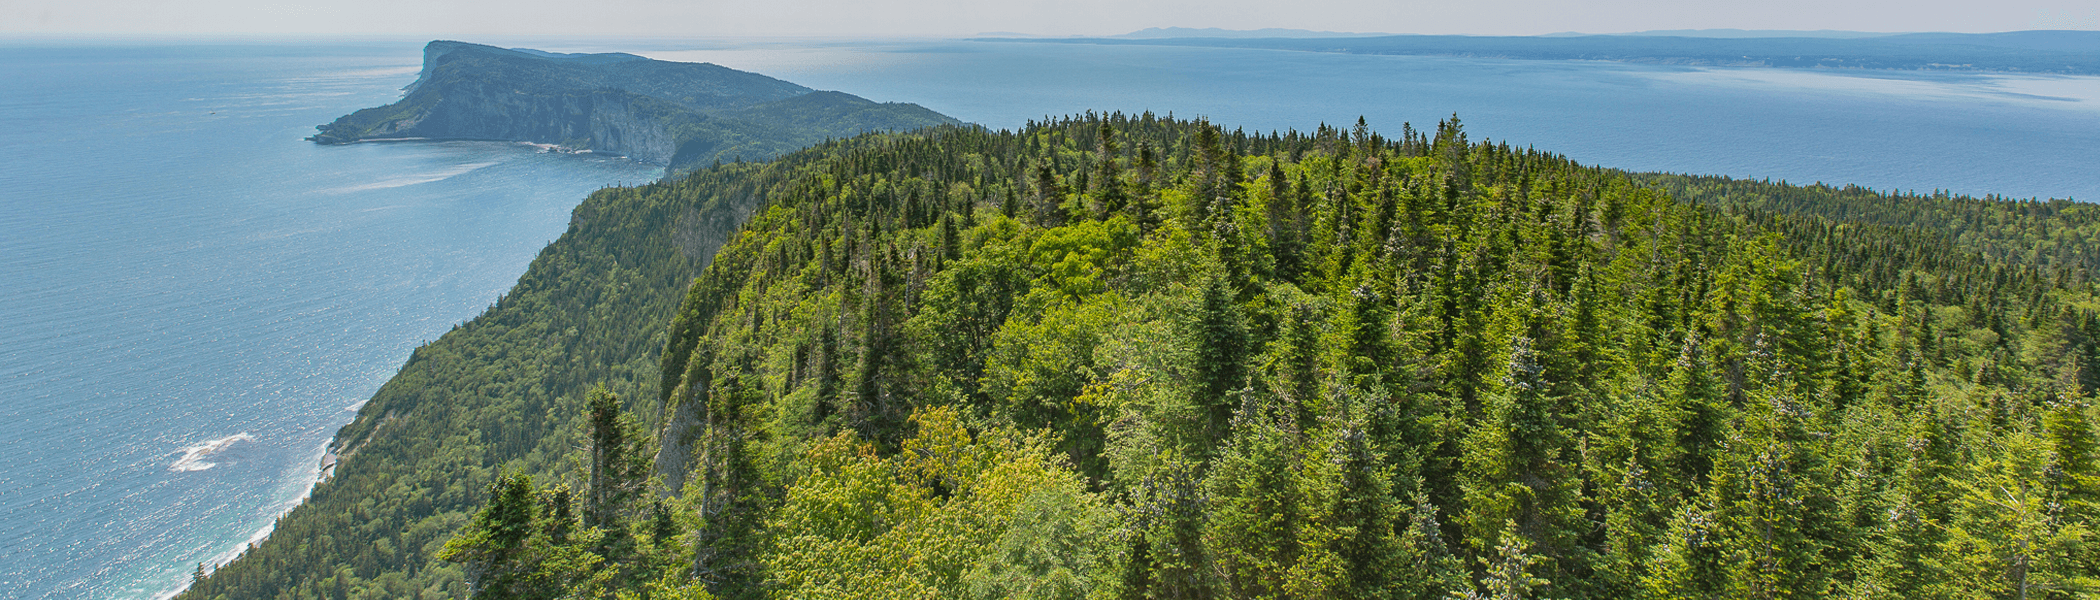 The view from Cap-Bon-Ami lookout tower